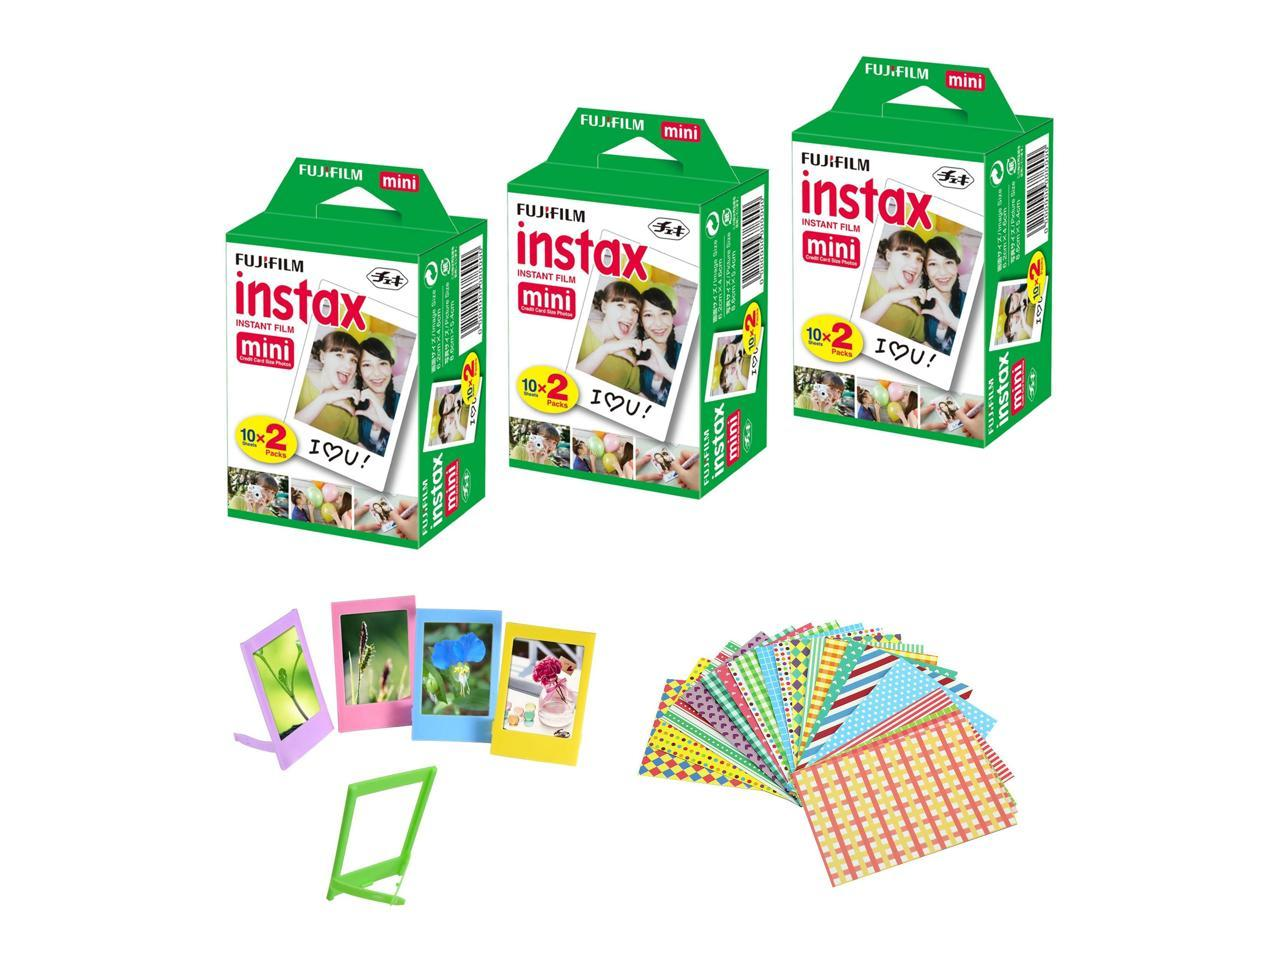 10 Paper Frames Fujifilm Instax Camera Mini Instant Film Sheets + 5 Picture Frames 3 Twin Packs 60 Sticker Frames. 60 Total Pictures